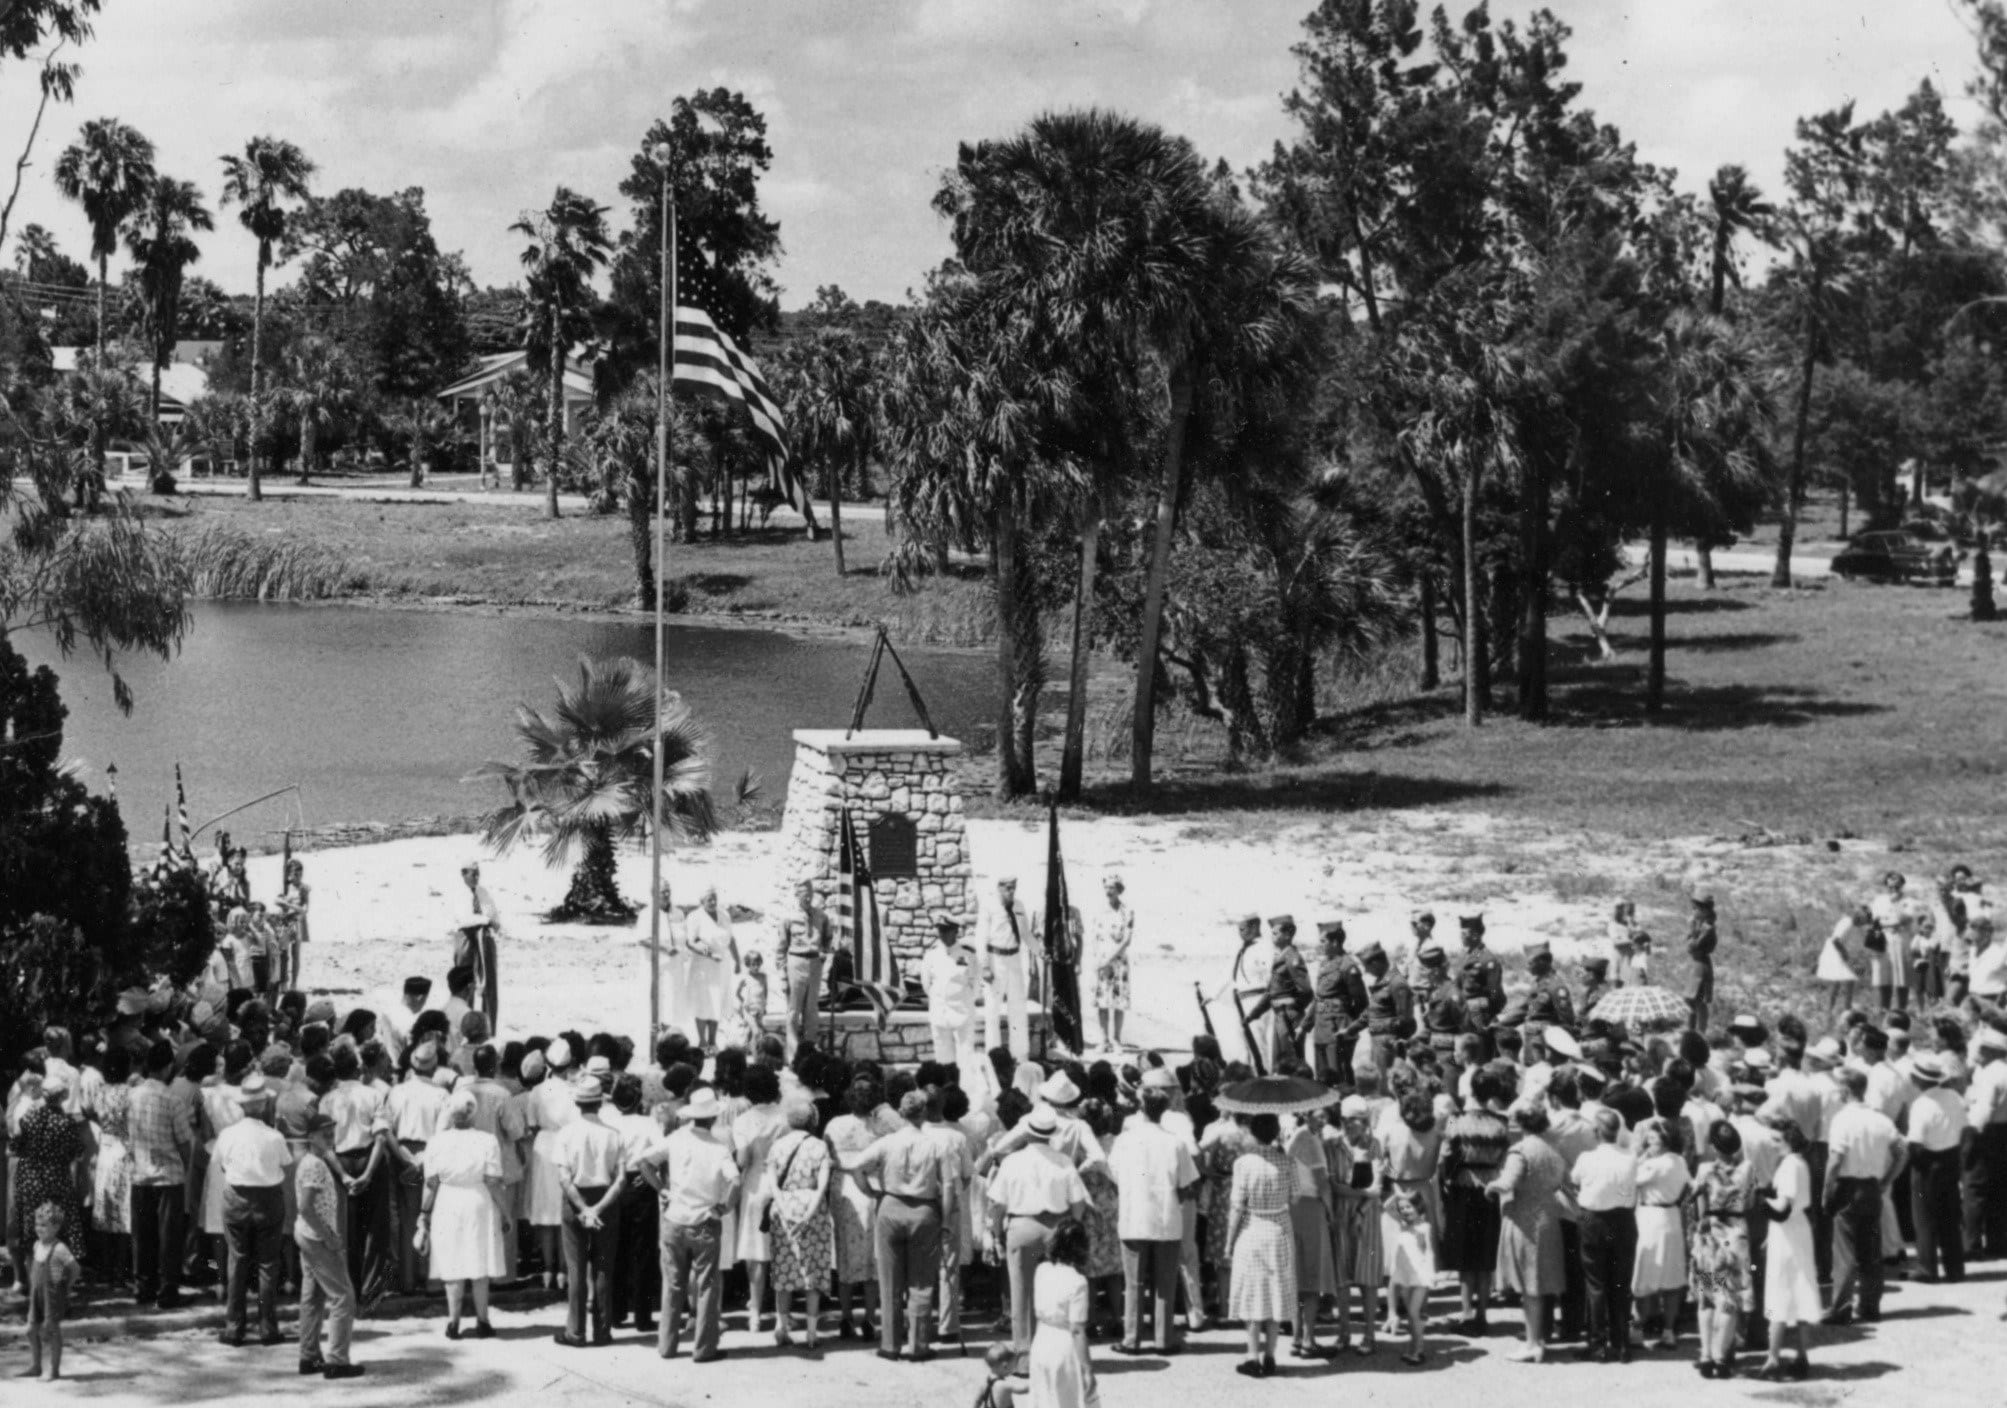 rededication of veterans memorial at orange lake